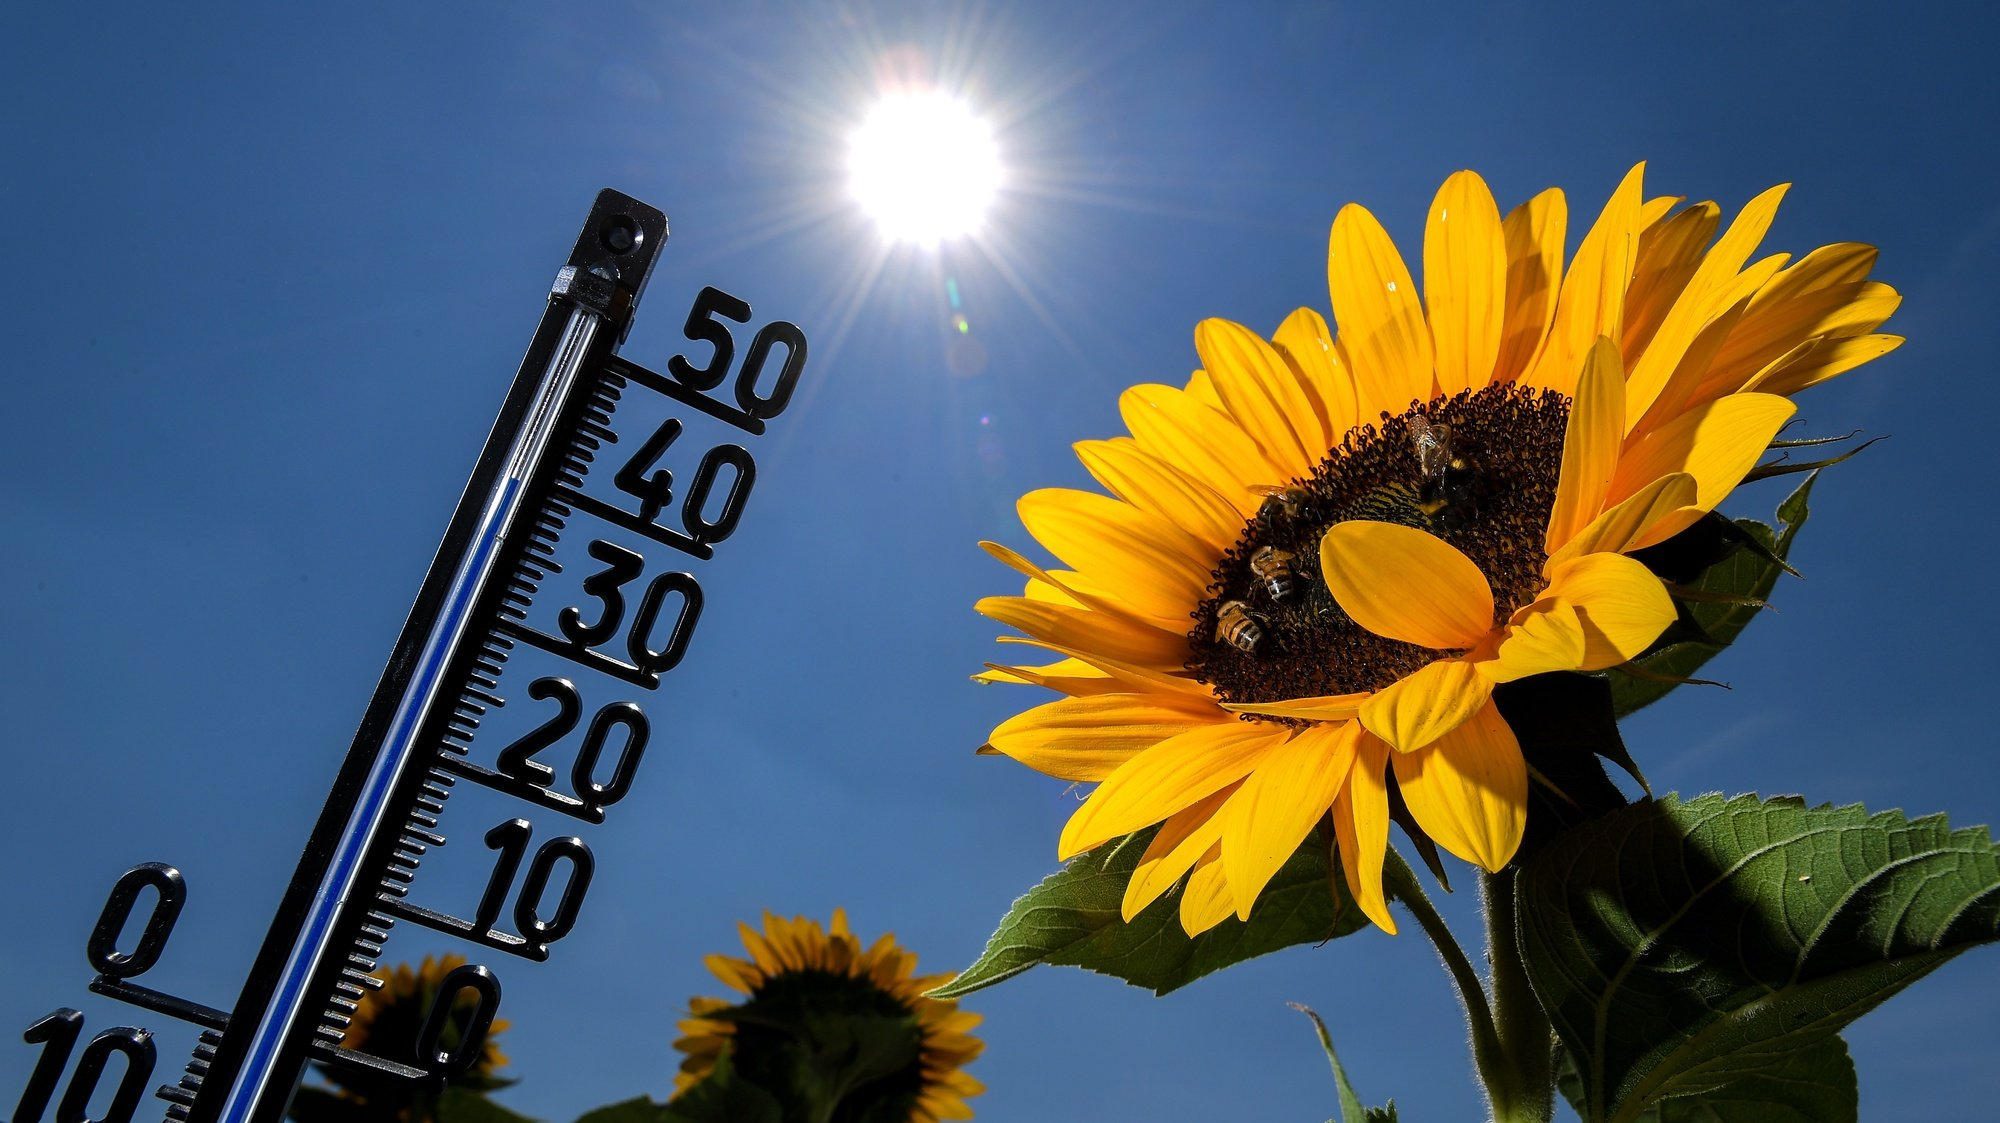 epa06913418 A thermometer among sunflowers shows an outside temperature of 39 degrees celsius in Kamp-Lintfort, Germany, 27 July 2018. According to metereologists, temperatures are expected to rise to over 35 degrees nationwide and close to 40 degrees. The German Weather Service (DWD) has issued a heat warning for large parts of Germany.  EPA/SASCHA STEINBACH